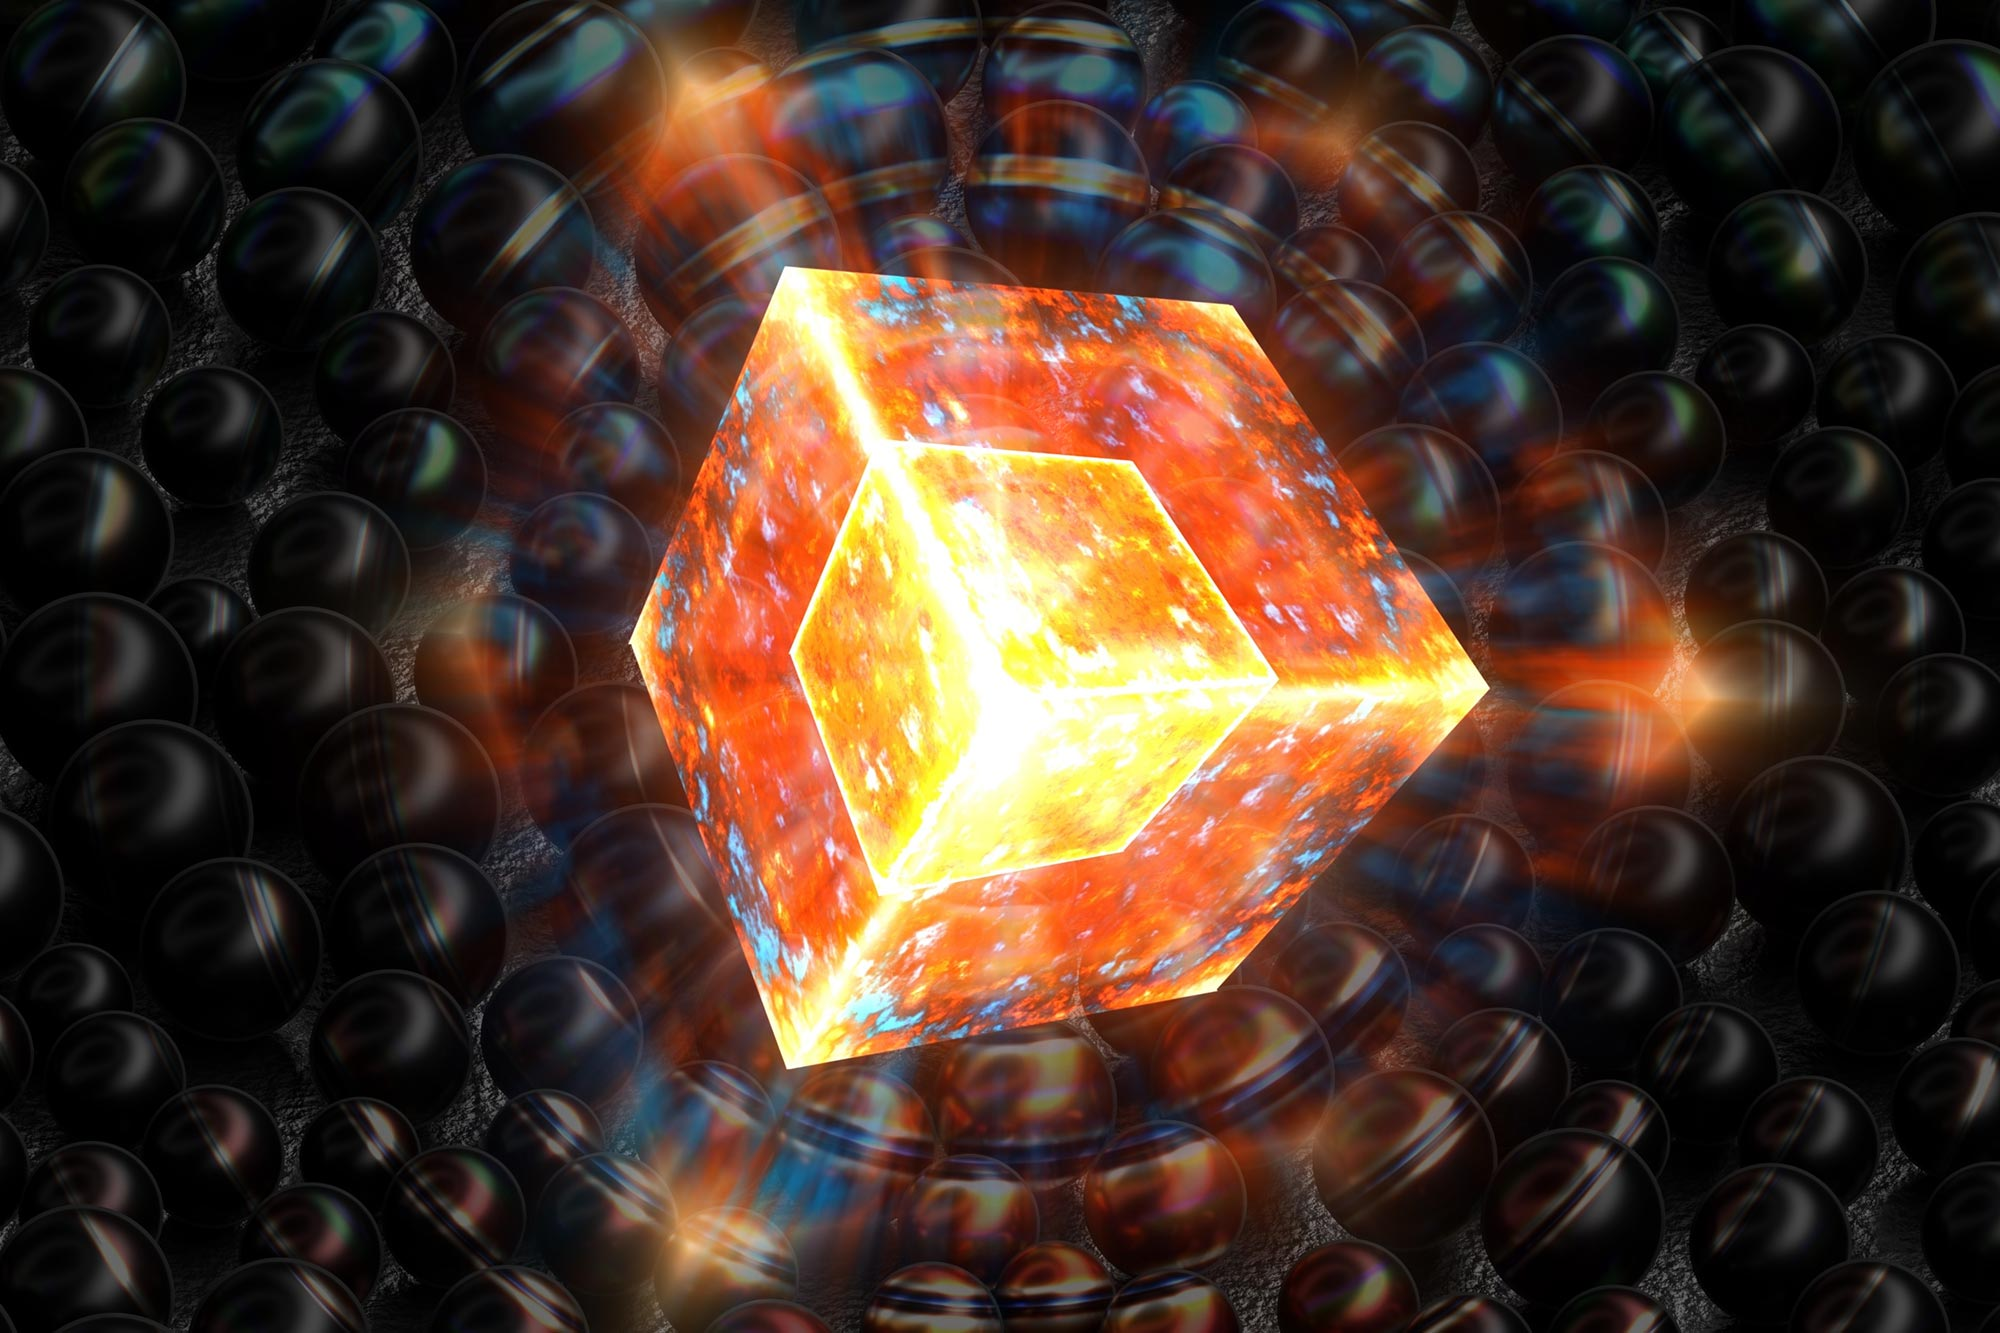 """Quantum Crystal With """"Time Reversal"""" Could Be a New Dark Matter Sensor - SciTechDaily"""